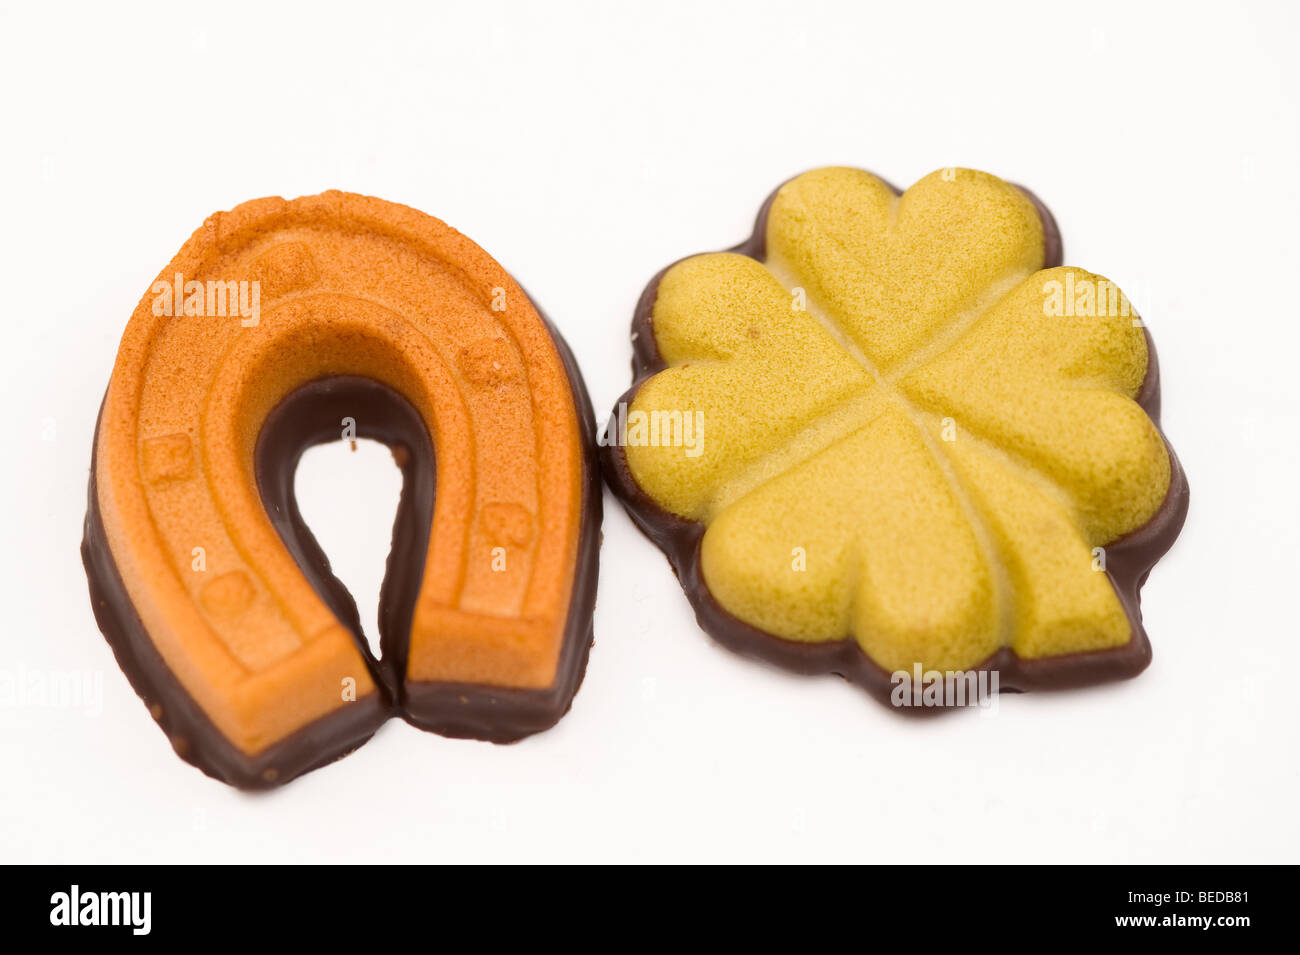 Good luck charms made of marzipan, horseshoe and cloverleaf - Stock Image